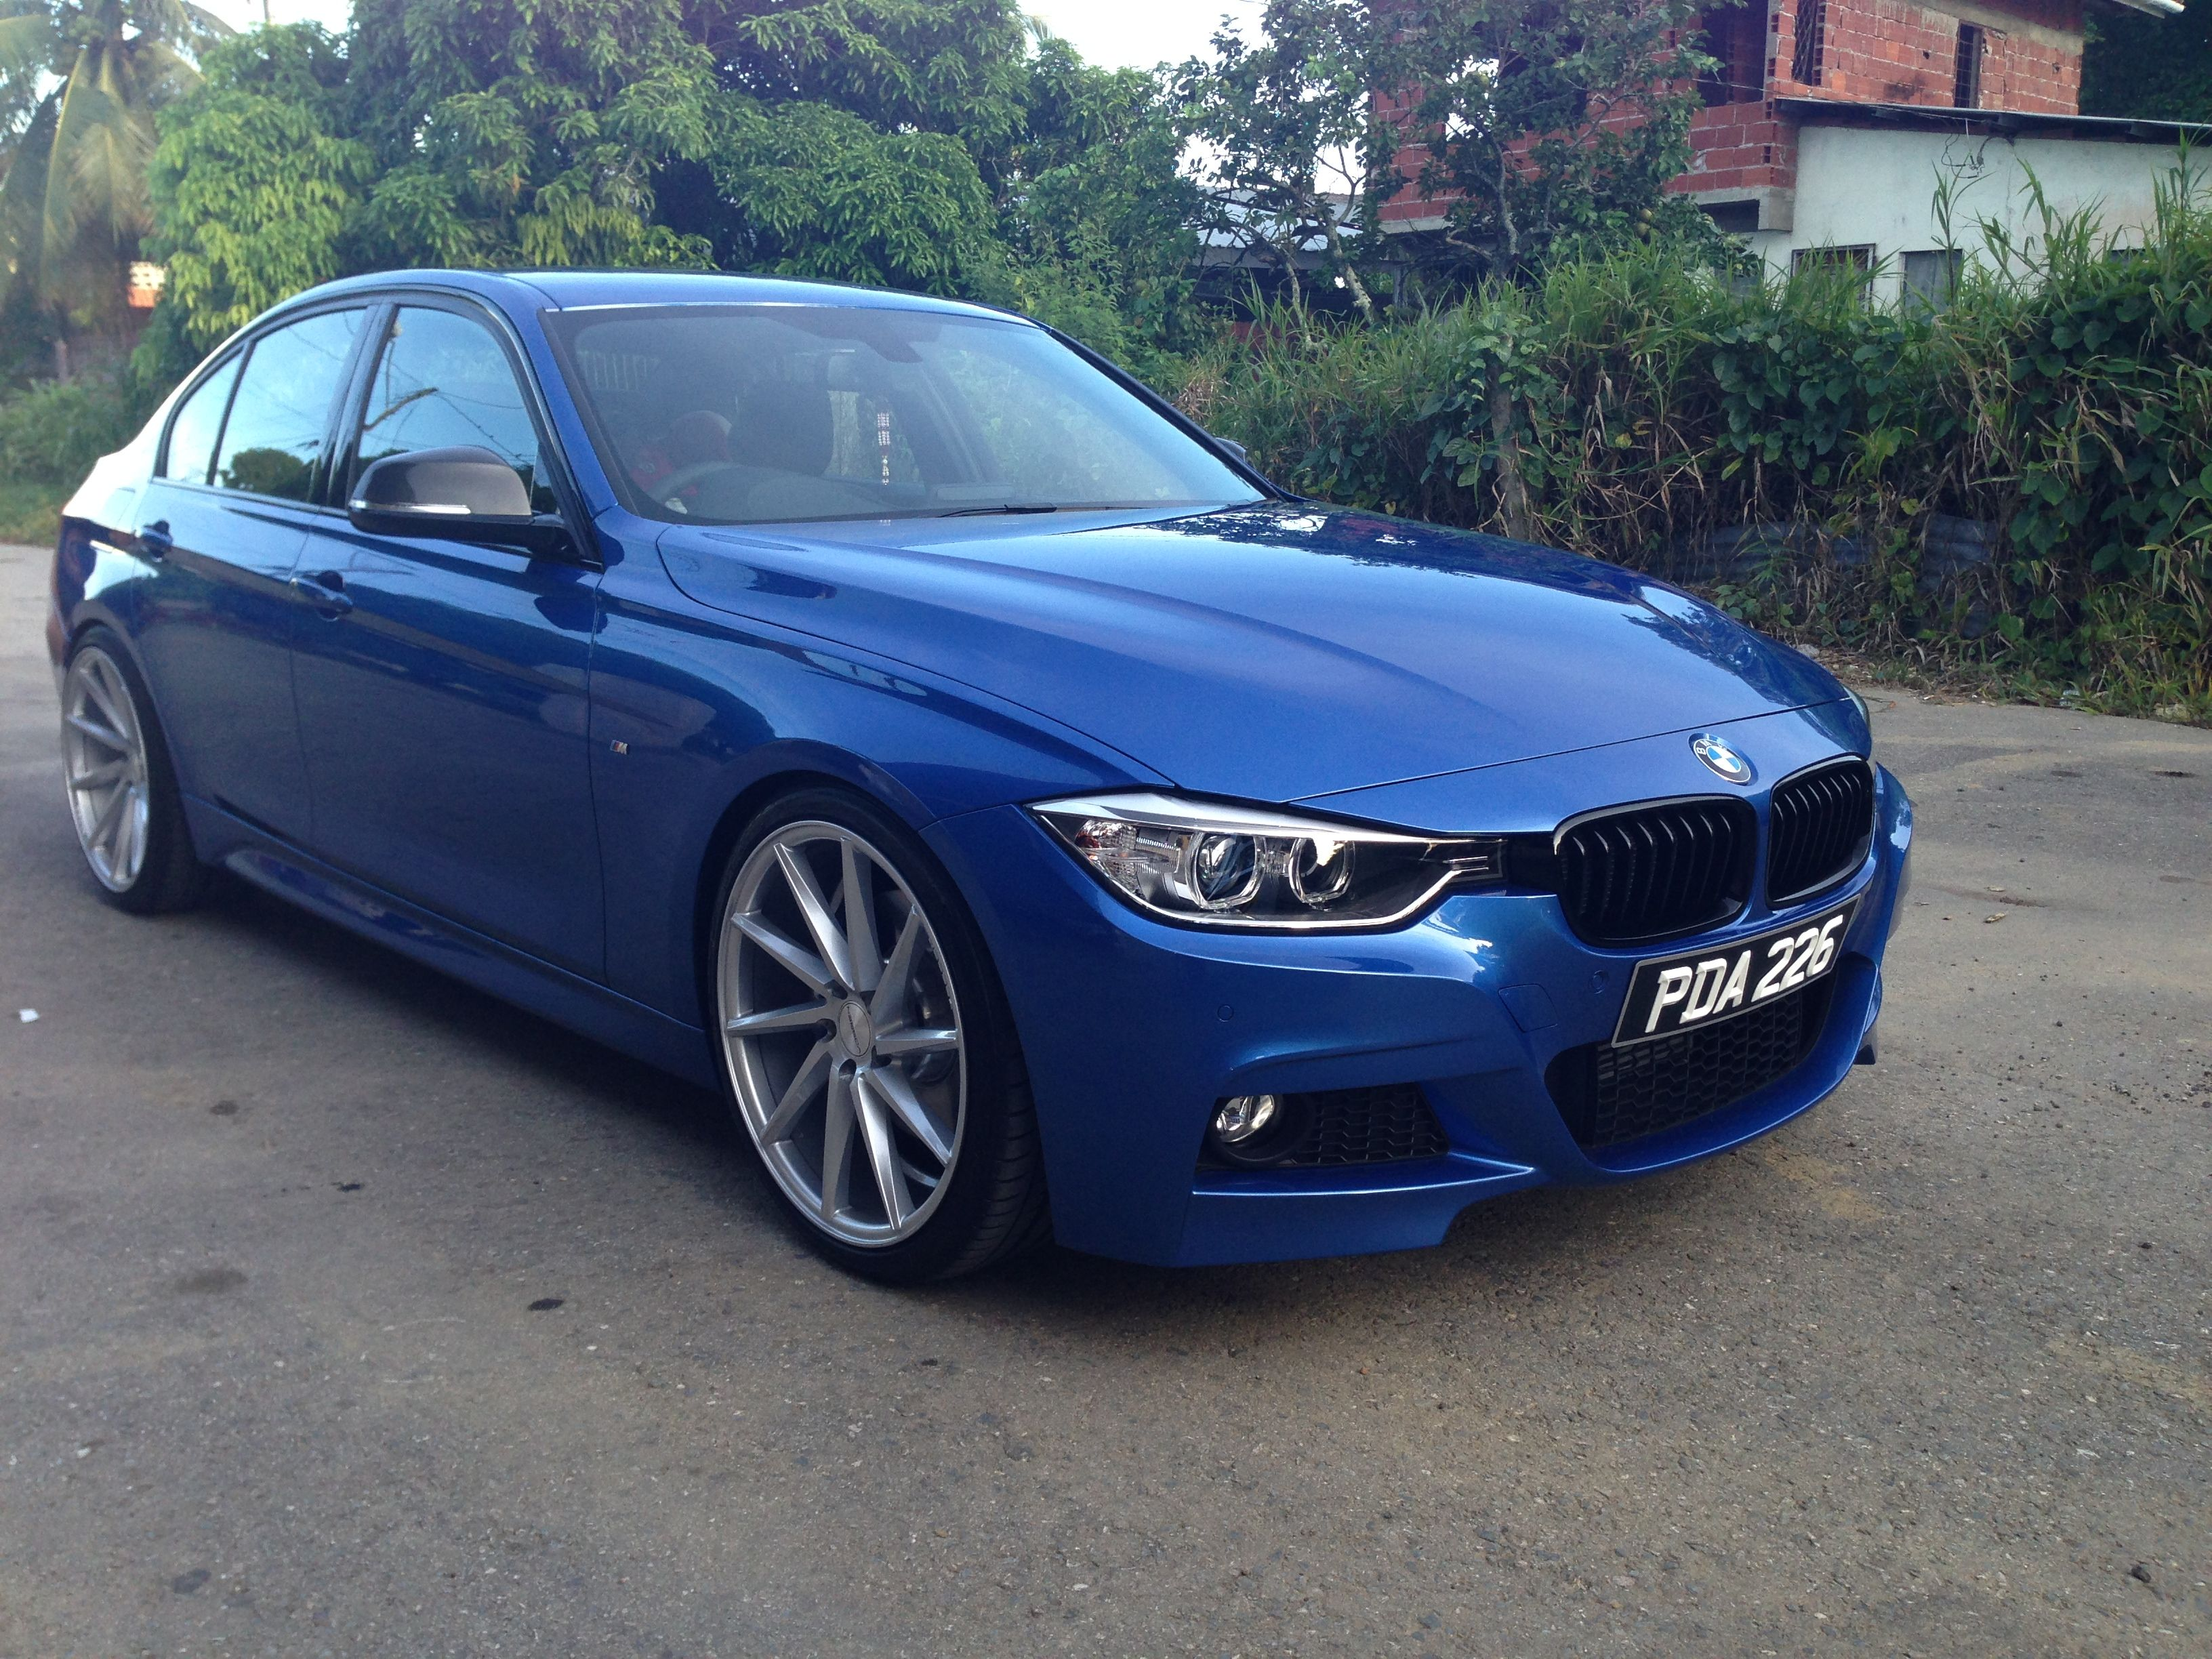 Bmw F30 Cvt With Images Sports Cars Luxury